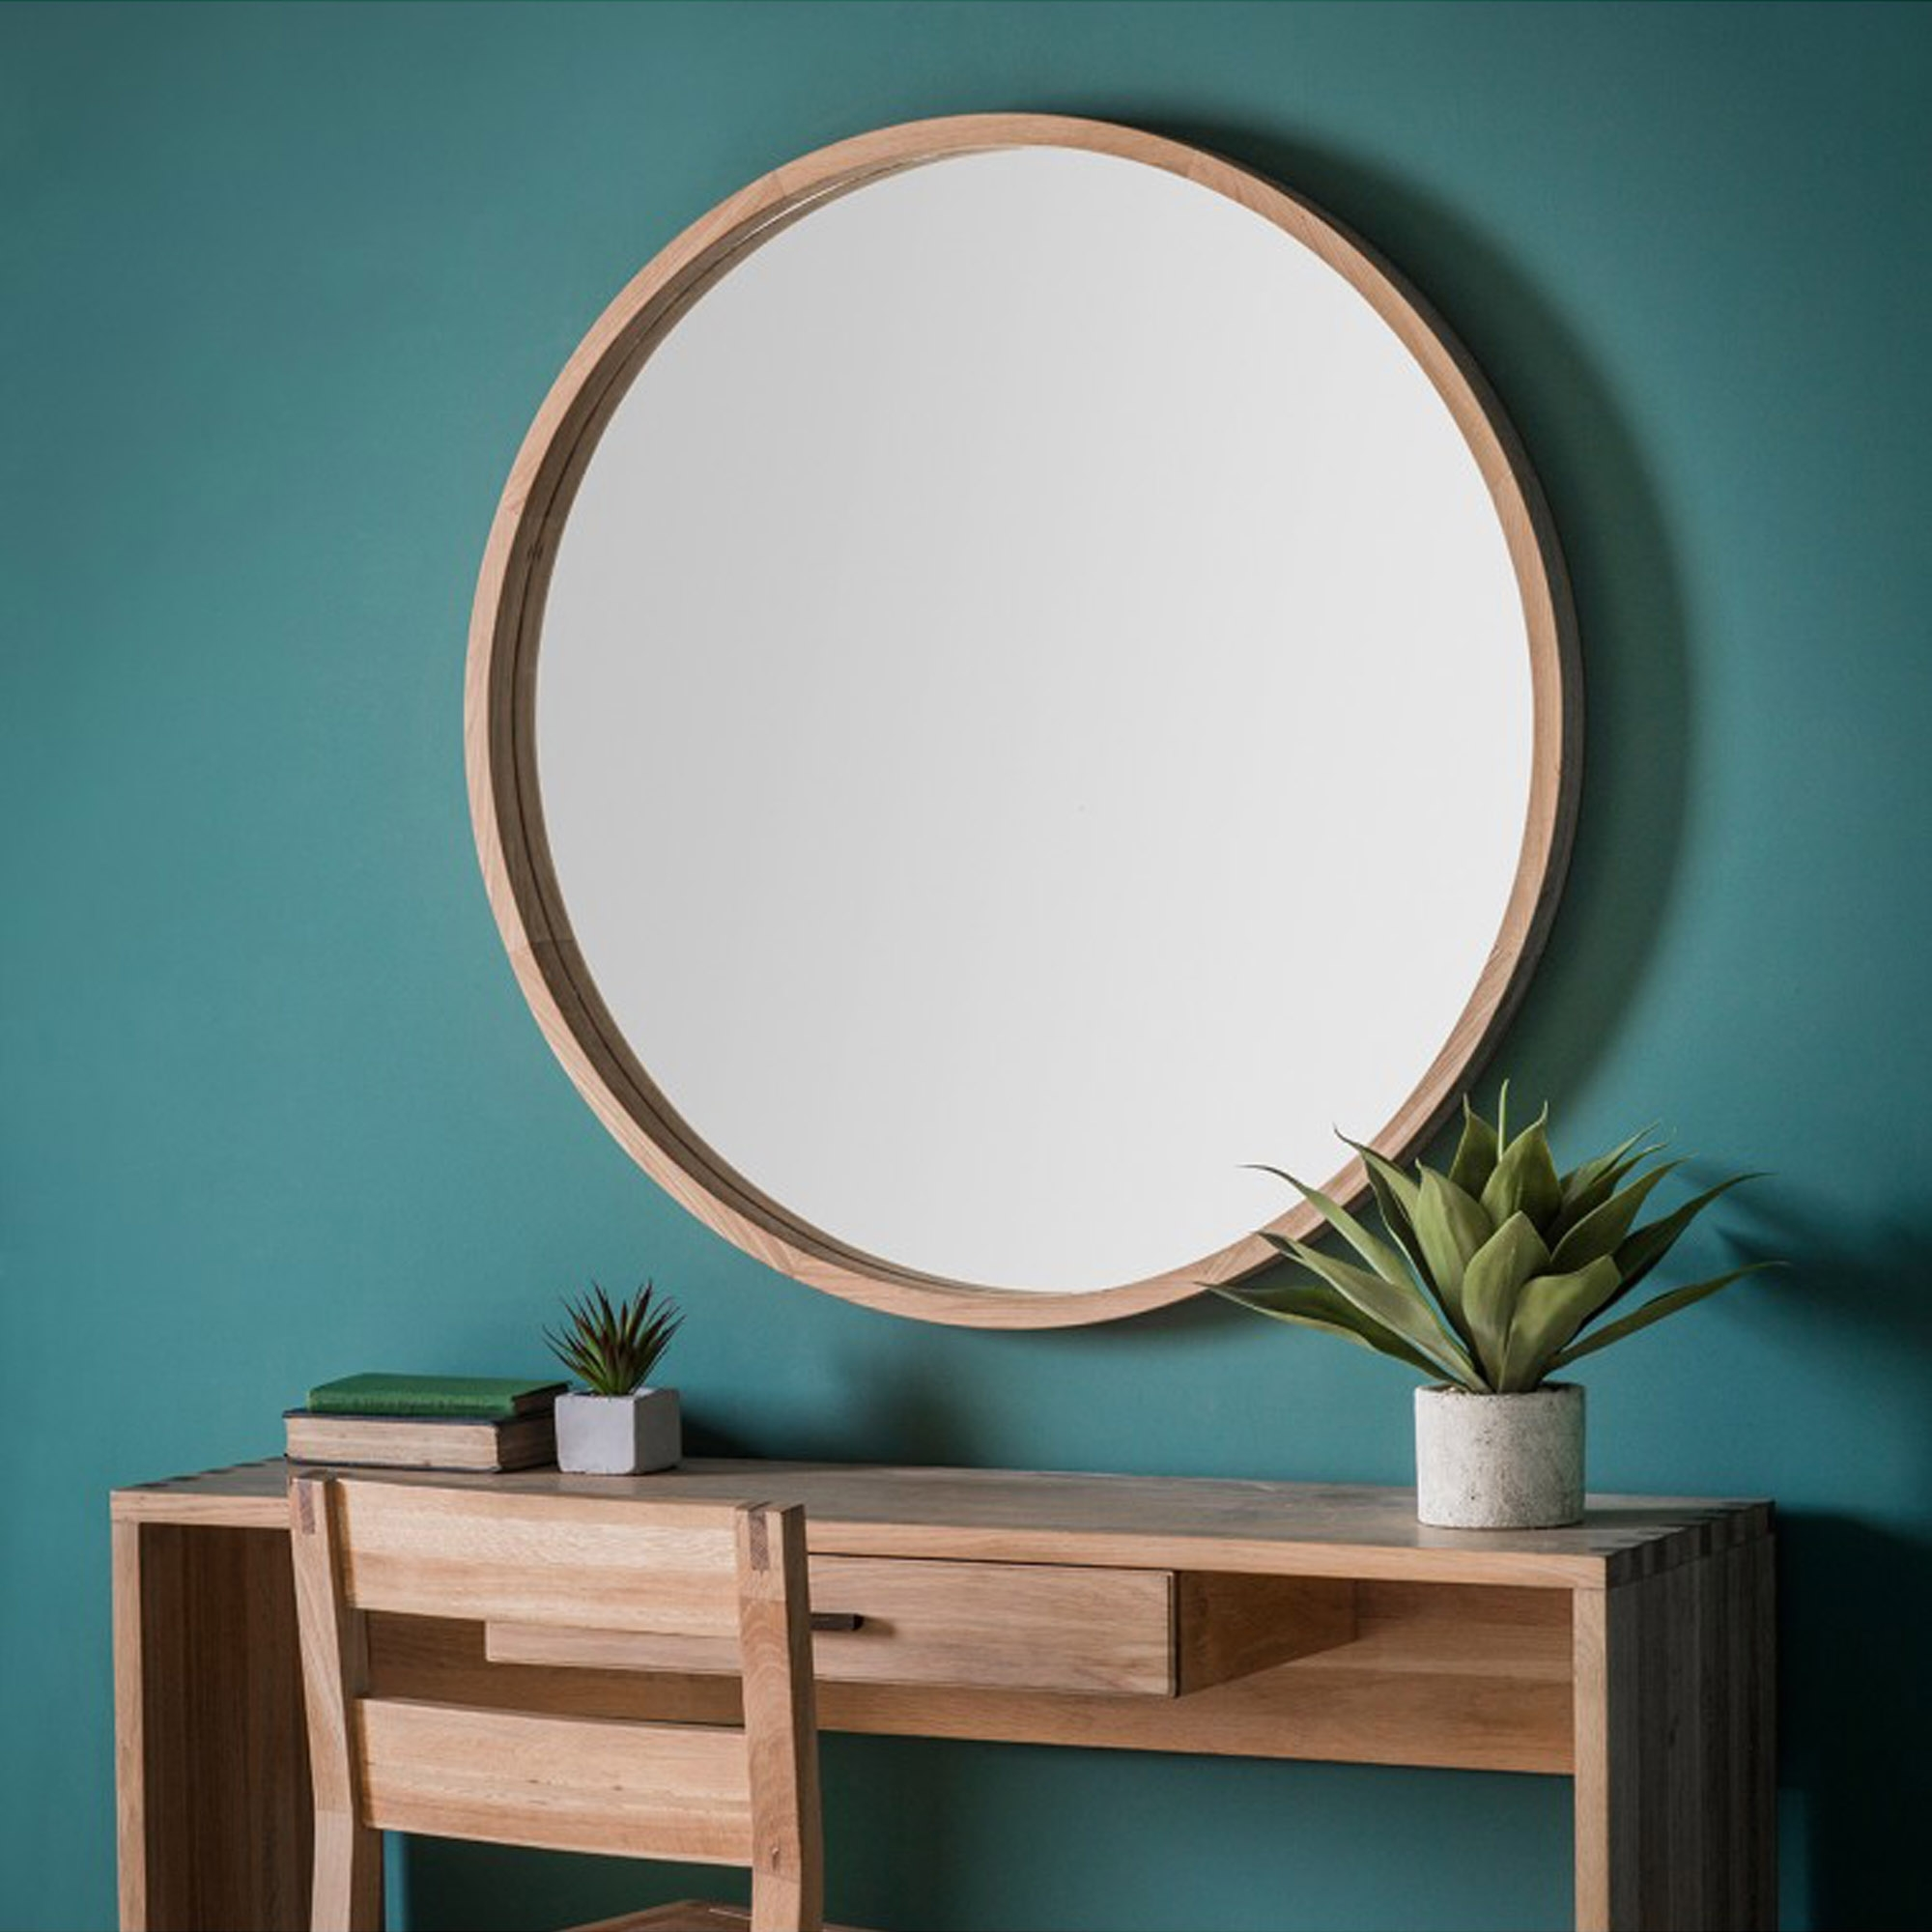 Bowman Large Round Wall Mirror Wall Mirrors Homesdirect365